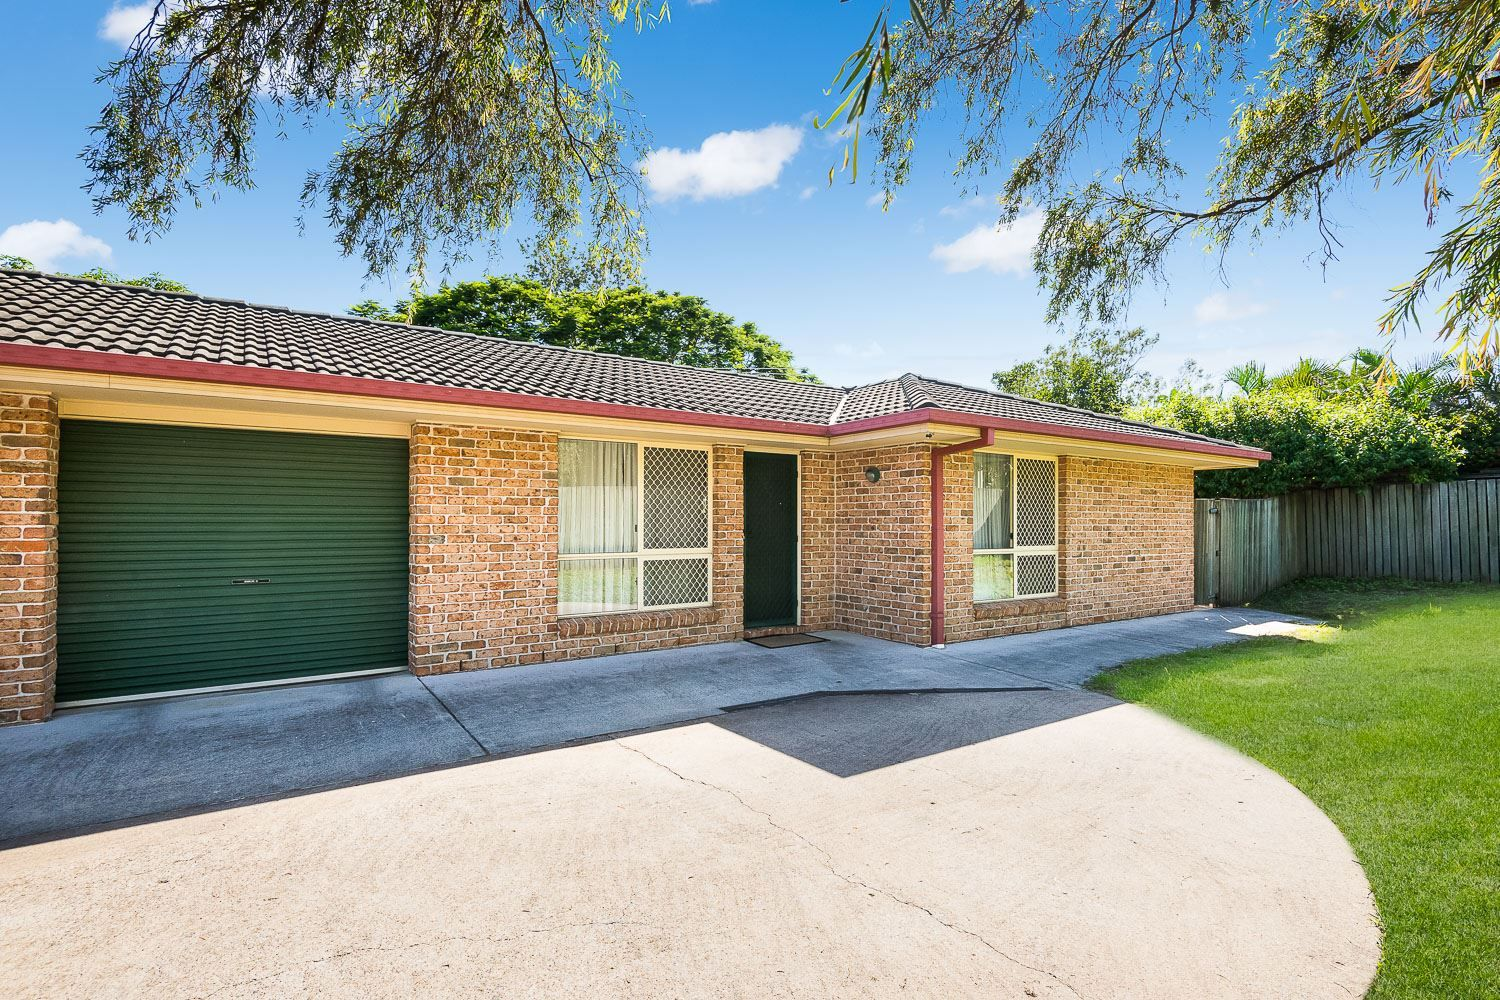 2/13A Merrell Street, North Booval QLD 4304, Image 1